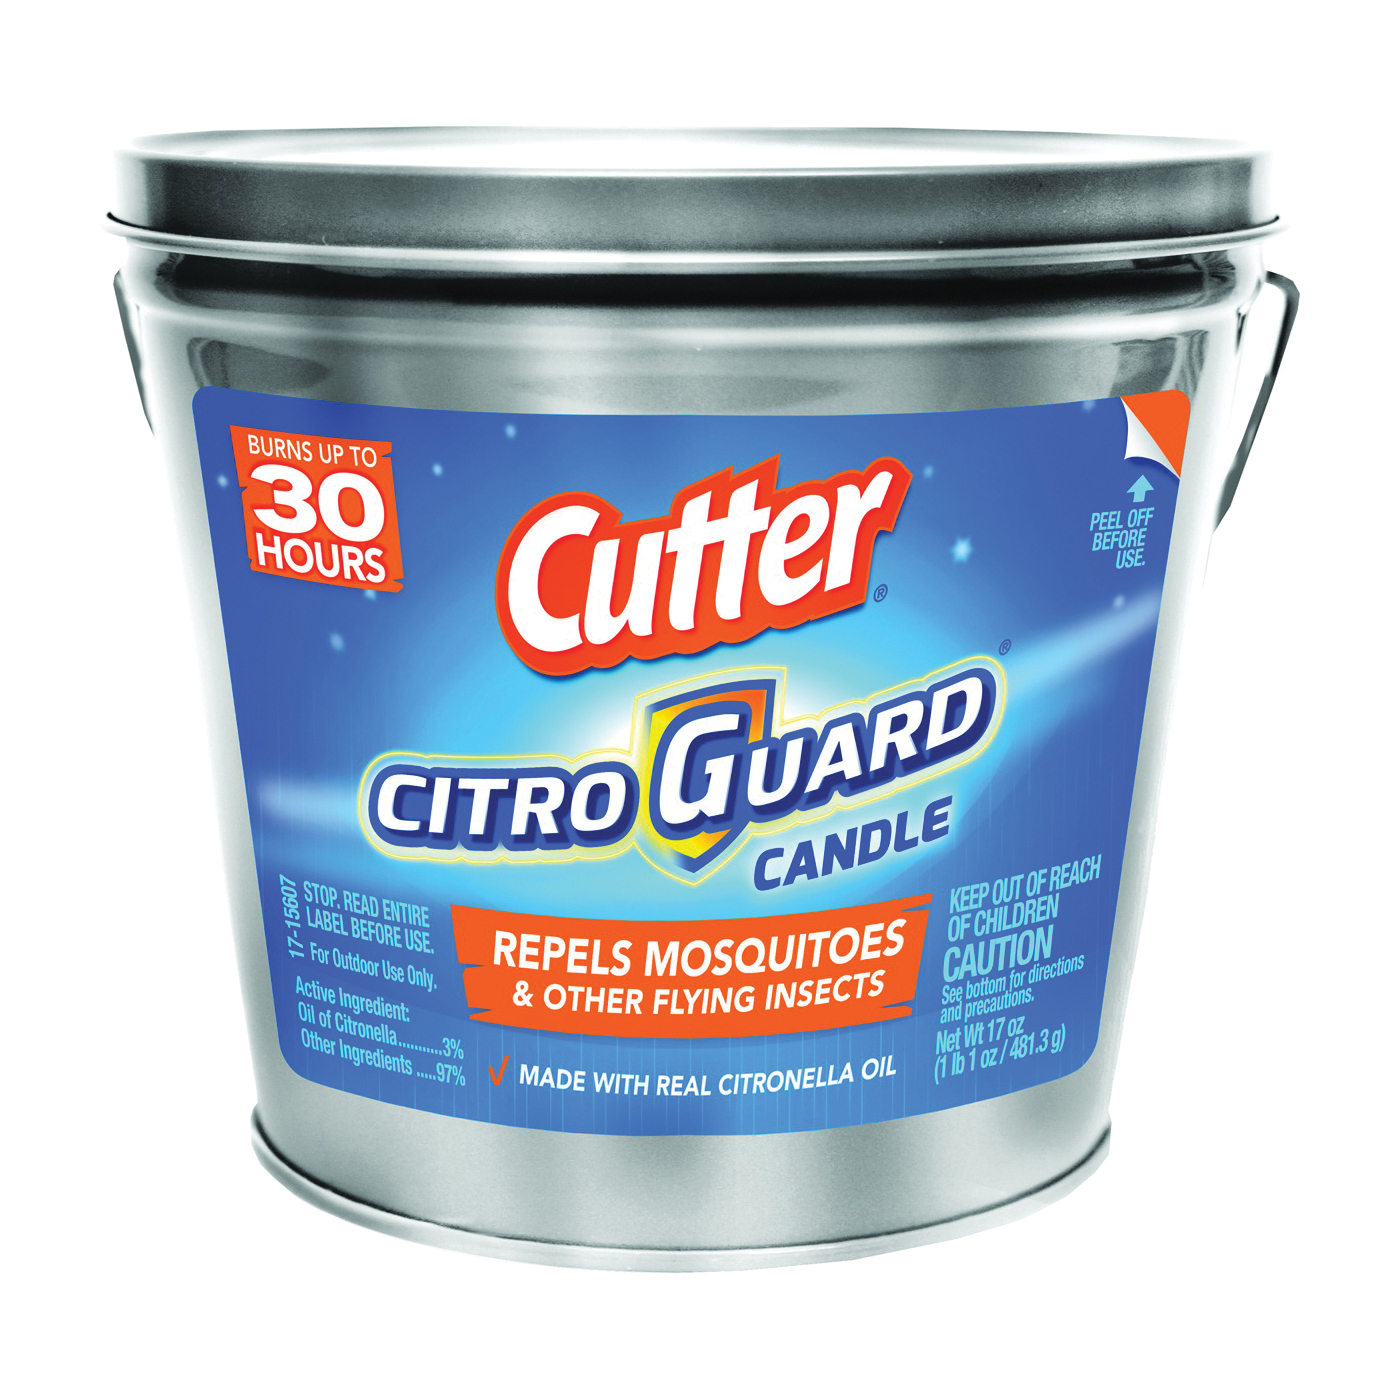 Picture of Cutter CITRO GUARD HG-96384 Insect Repellent Candle, Citronella, 17 oz Package, Bucket